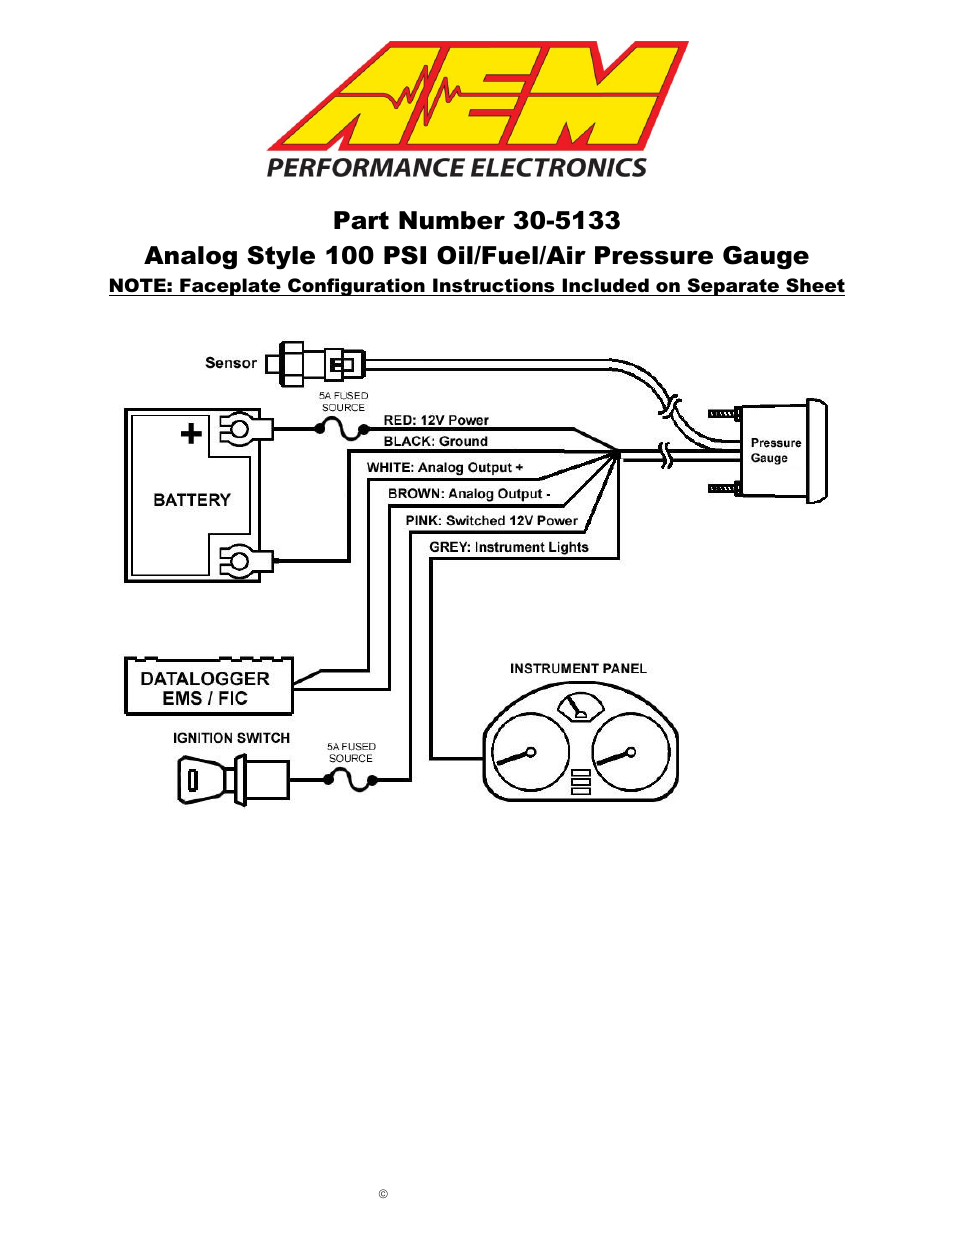 AEM 30-5135M Analog Oil Metric Pressure Gauge User Manual | 6 pages | Also  for: 30-5135 Analog Oil SAE Pressure Gauge, 30-5133M Analog Oil Fuel Metric  ...